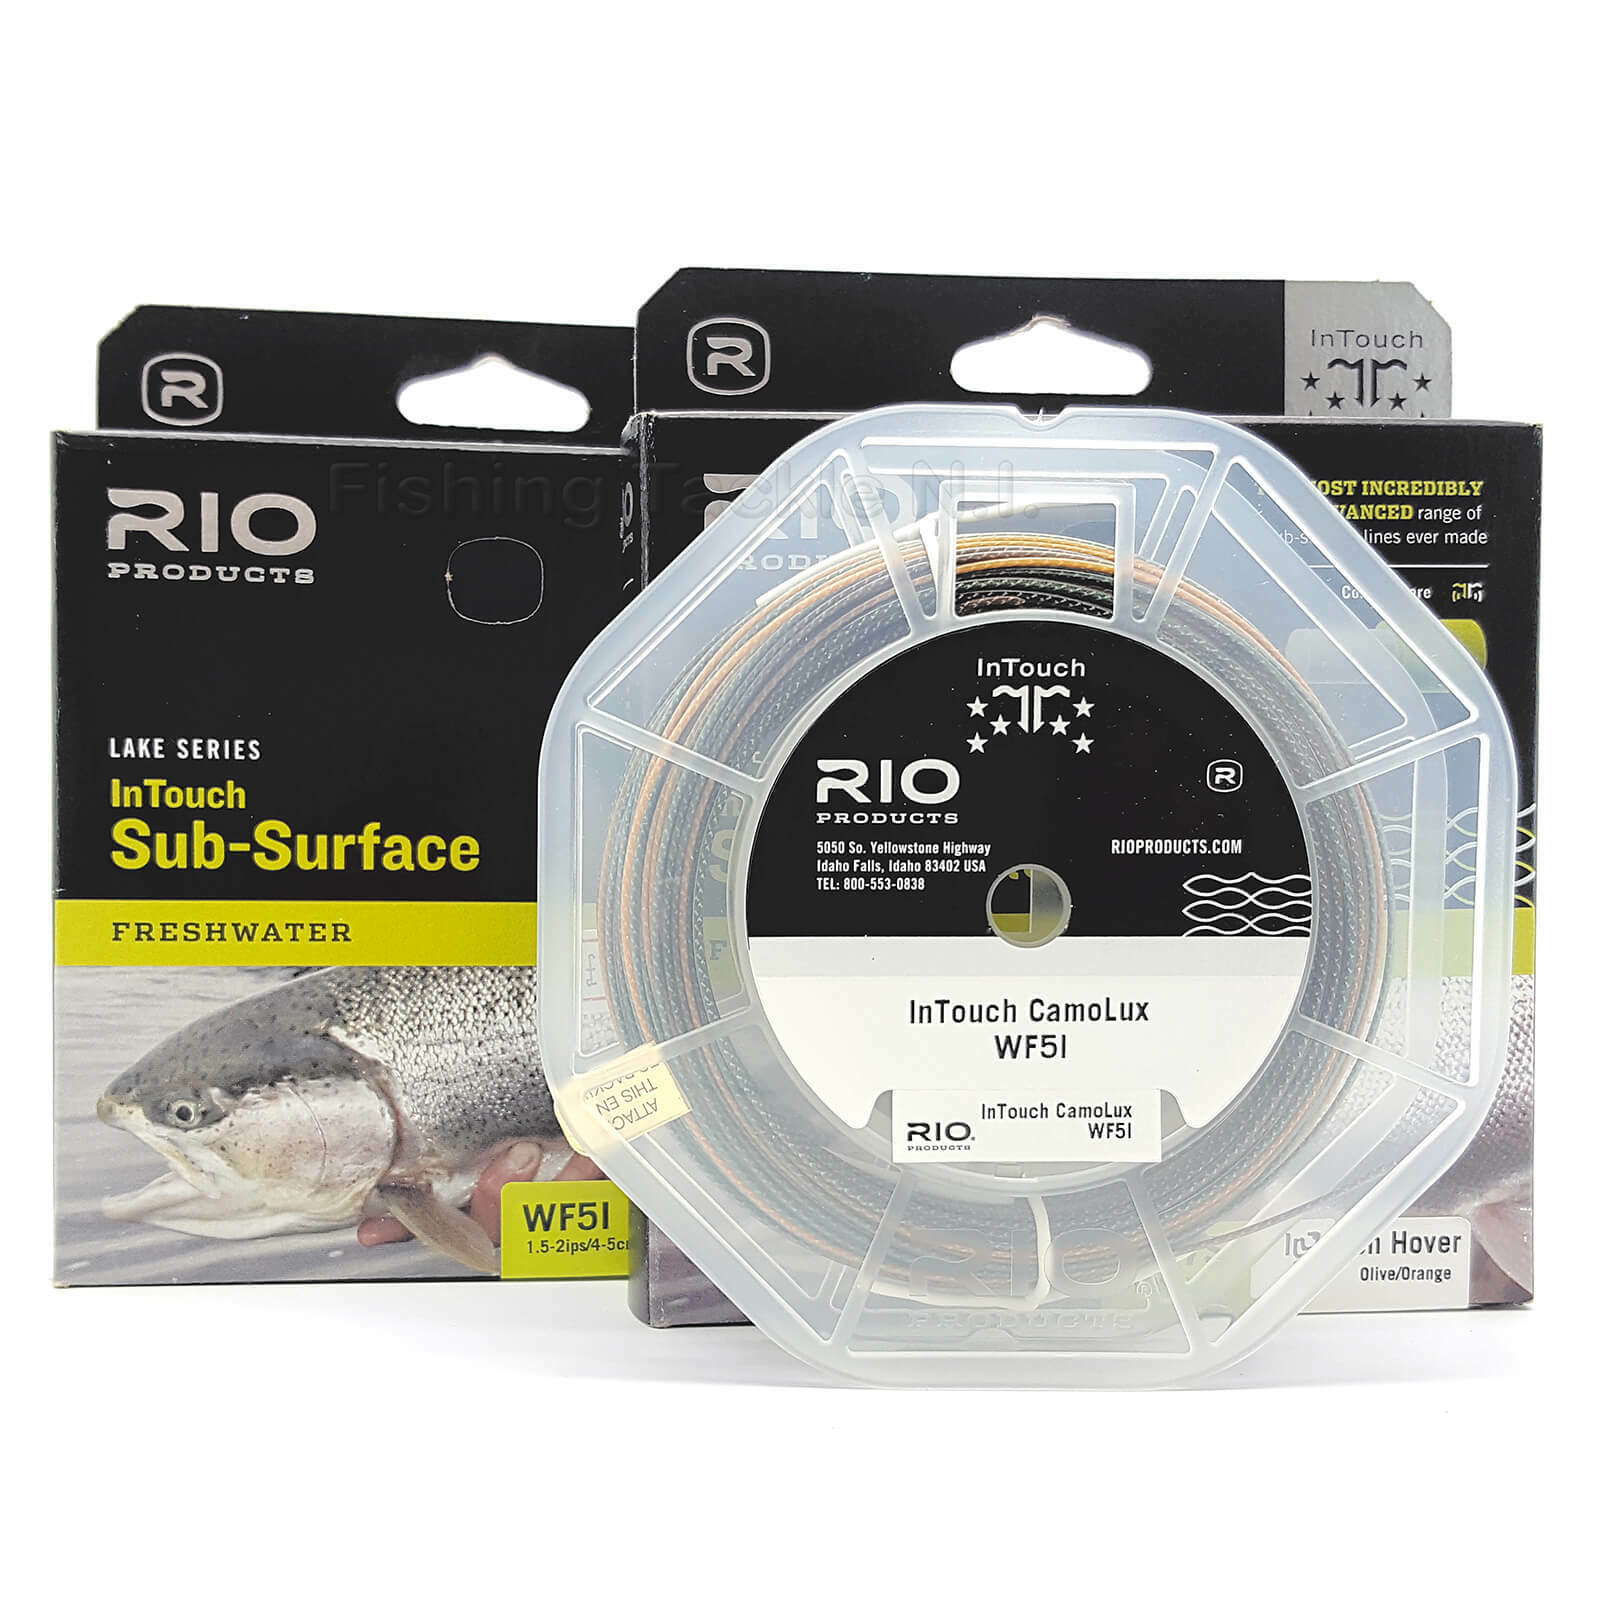 Series Rio Lake Intouch Subyta Hover Freshwater Fly Fishing Line